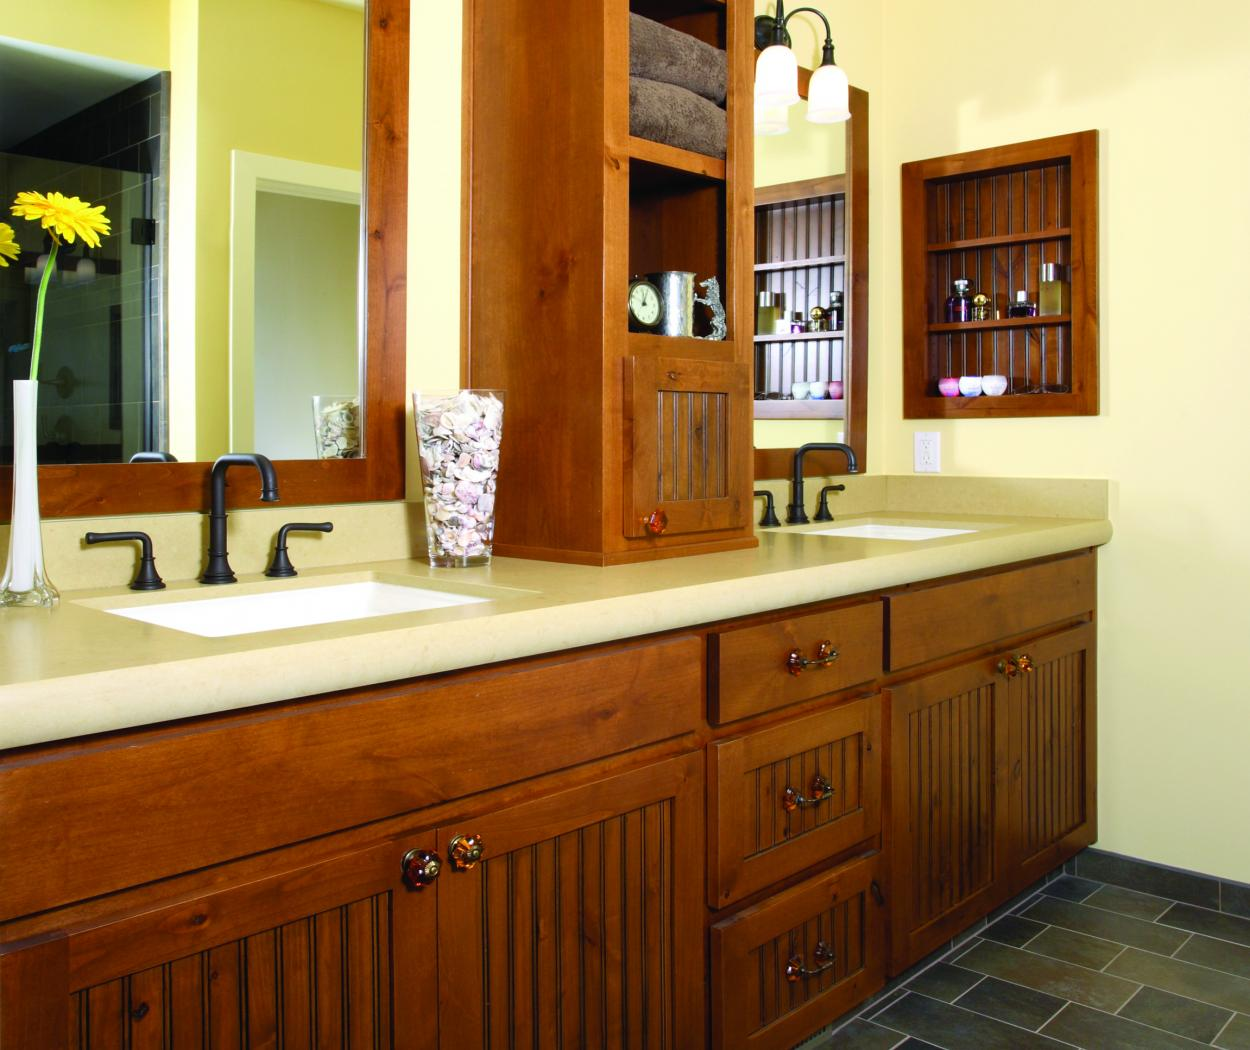 Transitional Knotty Alder Bathroom Vanity with Double Sinks and Open Shelves